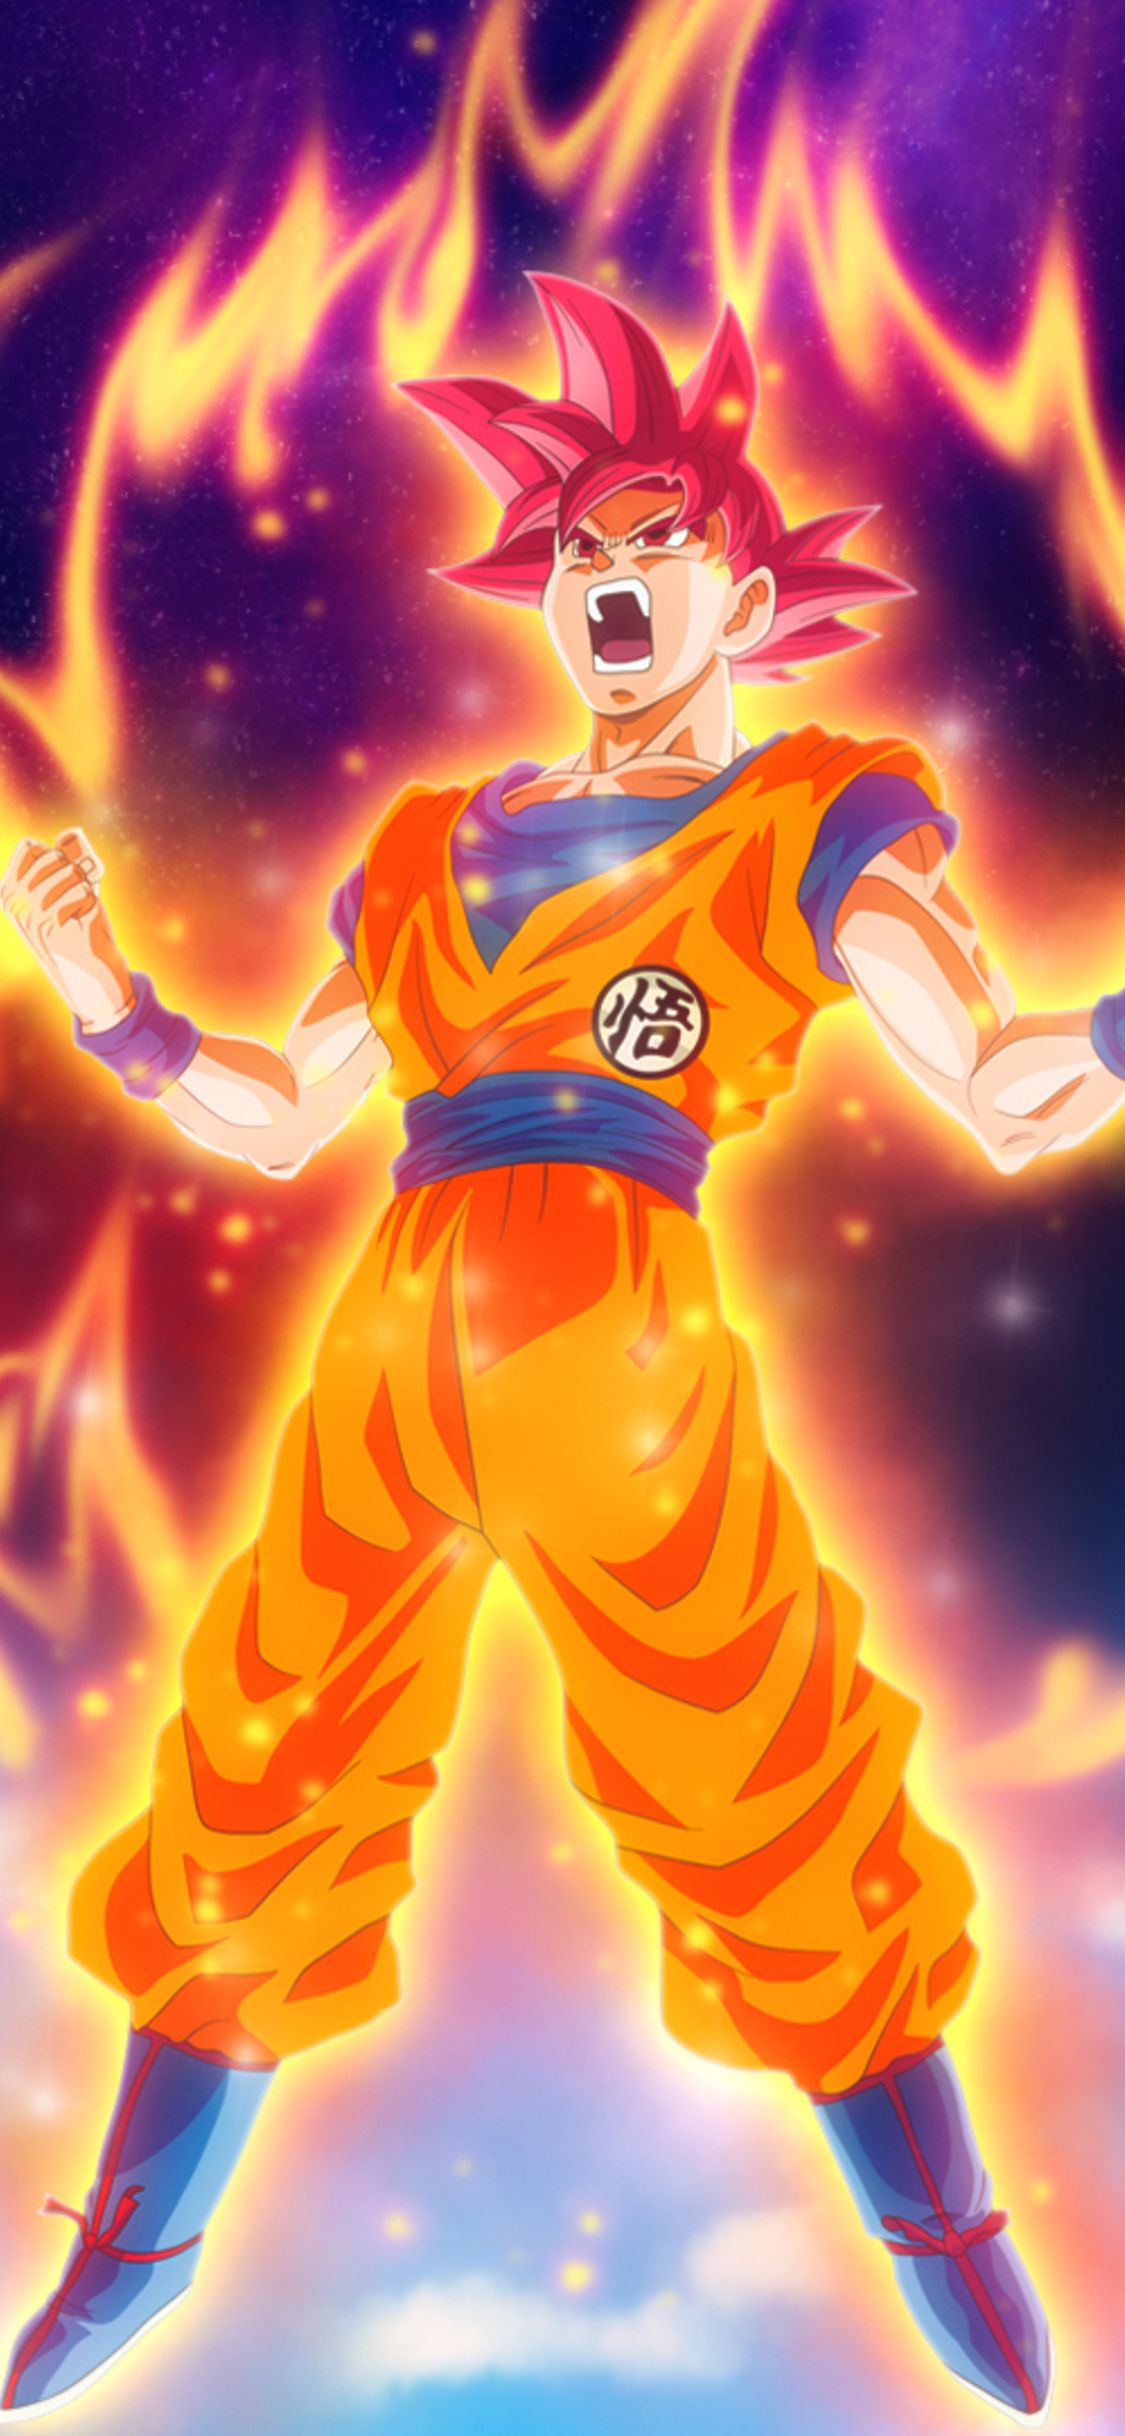 1125x2436 Dragon Ball Z Goku Iphone Xs Iphone 10 Iphone X Hd 4k